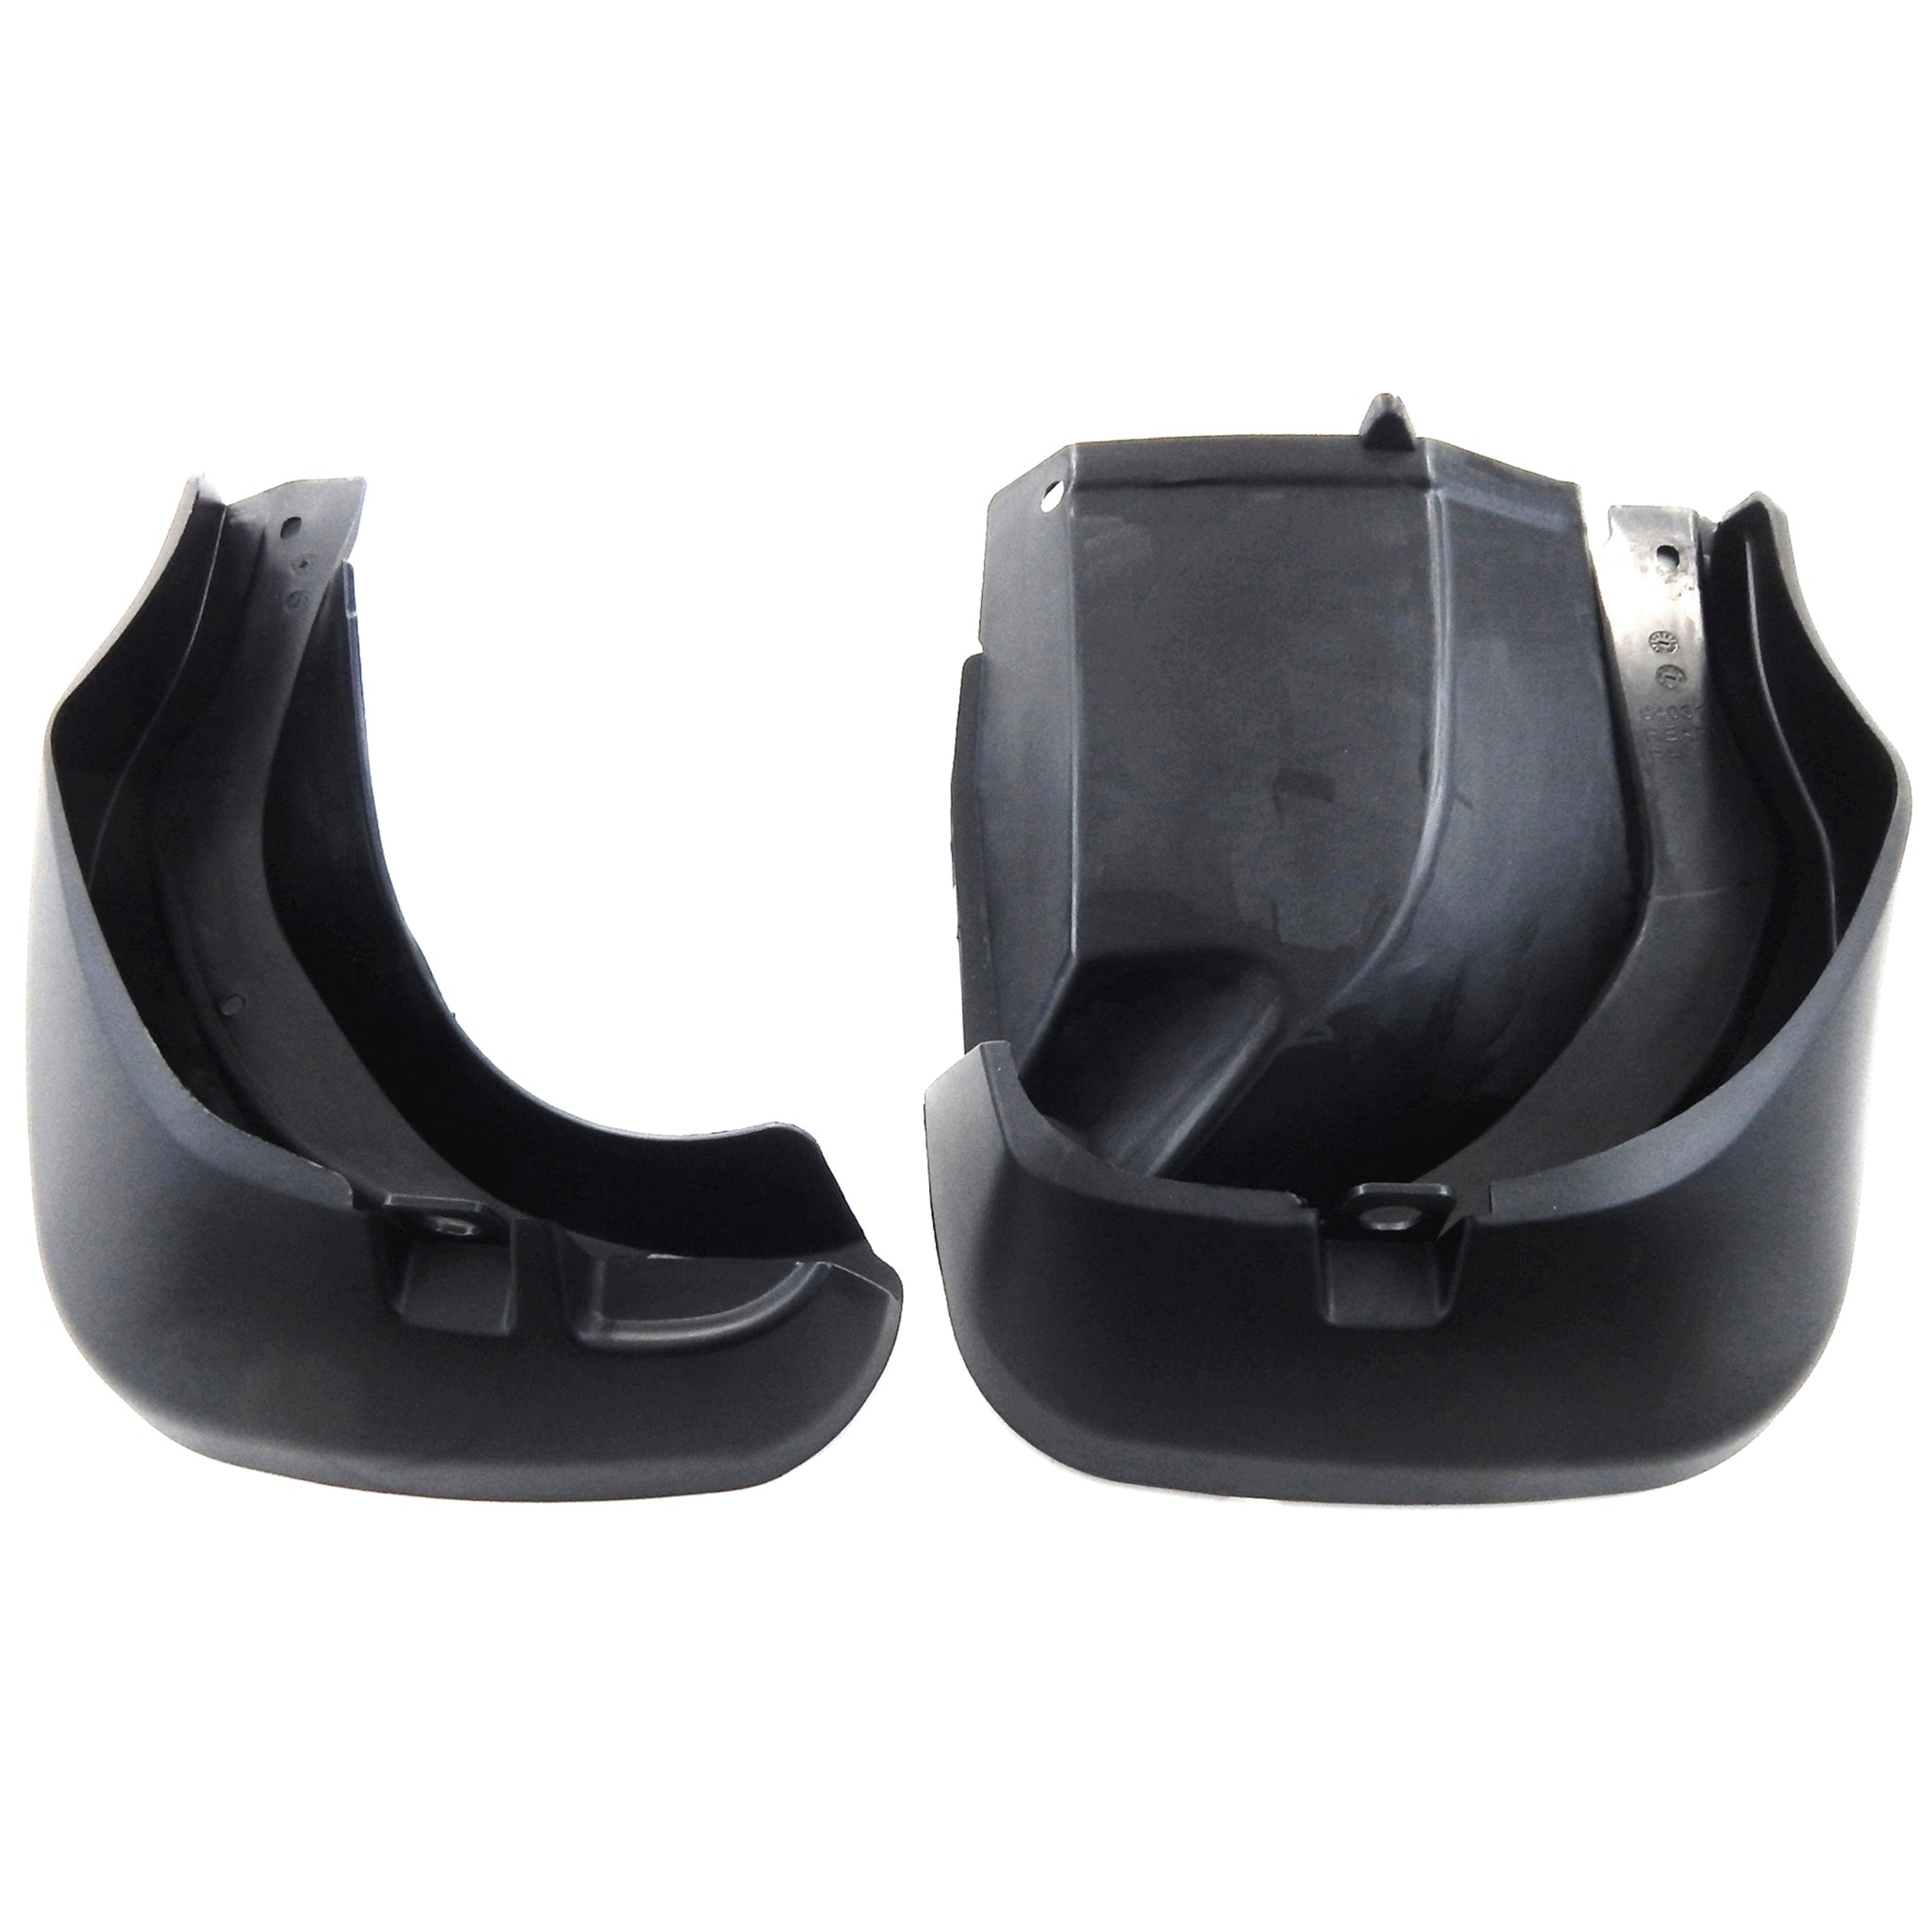 2012-2016 Compatible with Honda CR-V Mud Flaps Mud Guards Splash Guards Rear Molded 2pc Pair